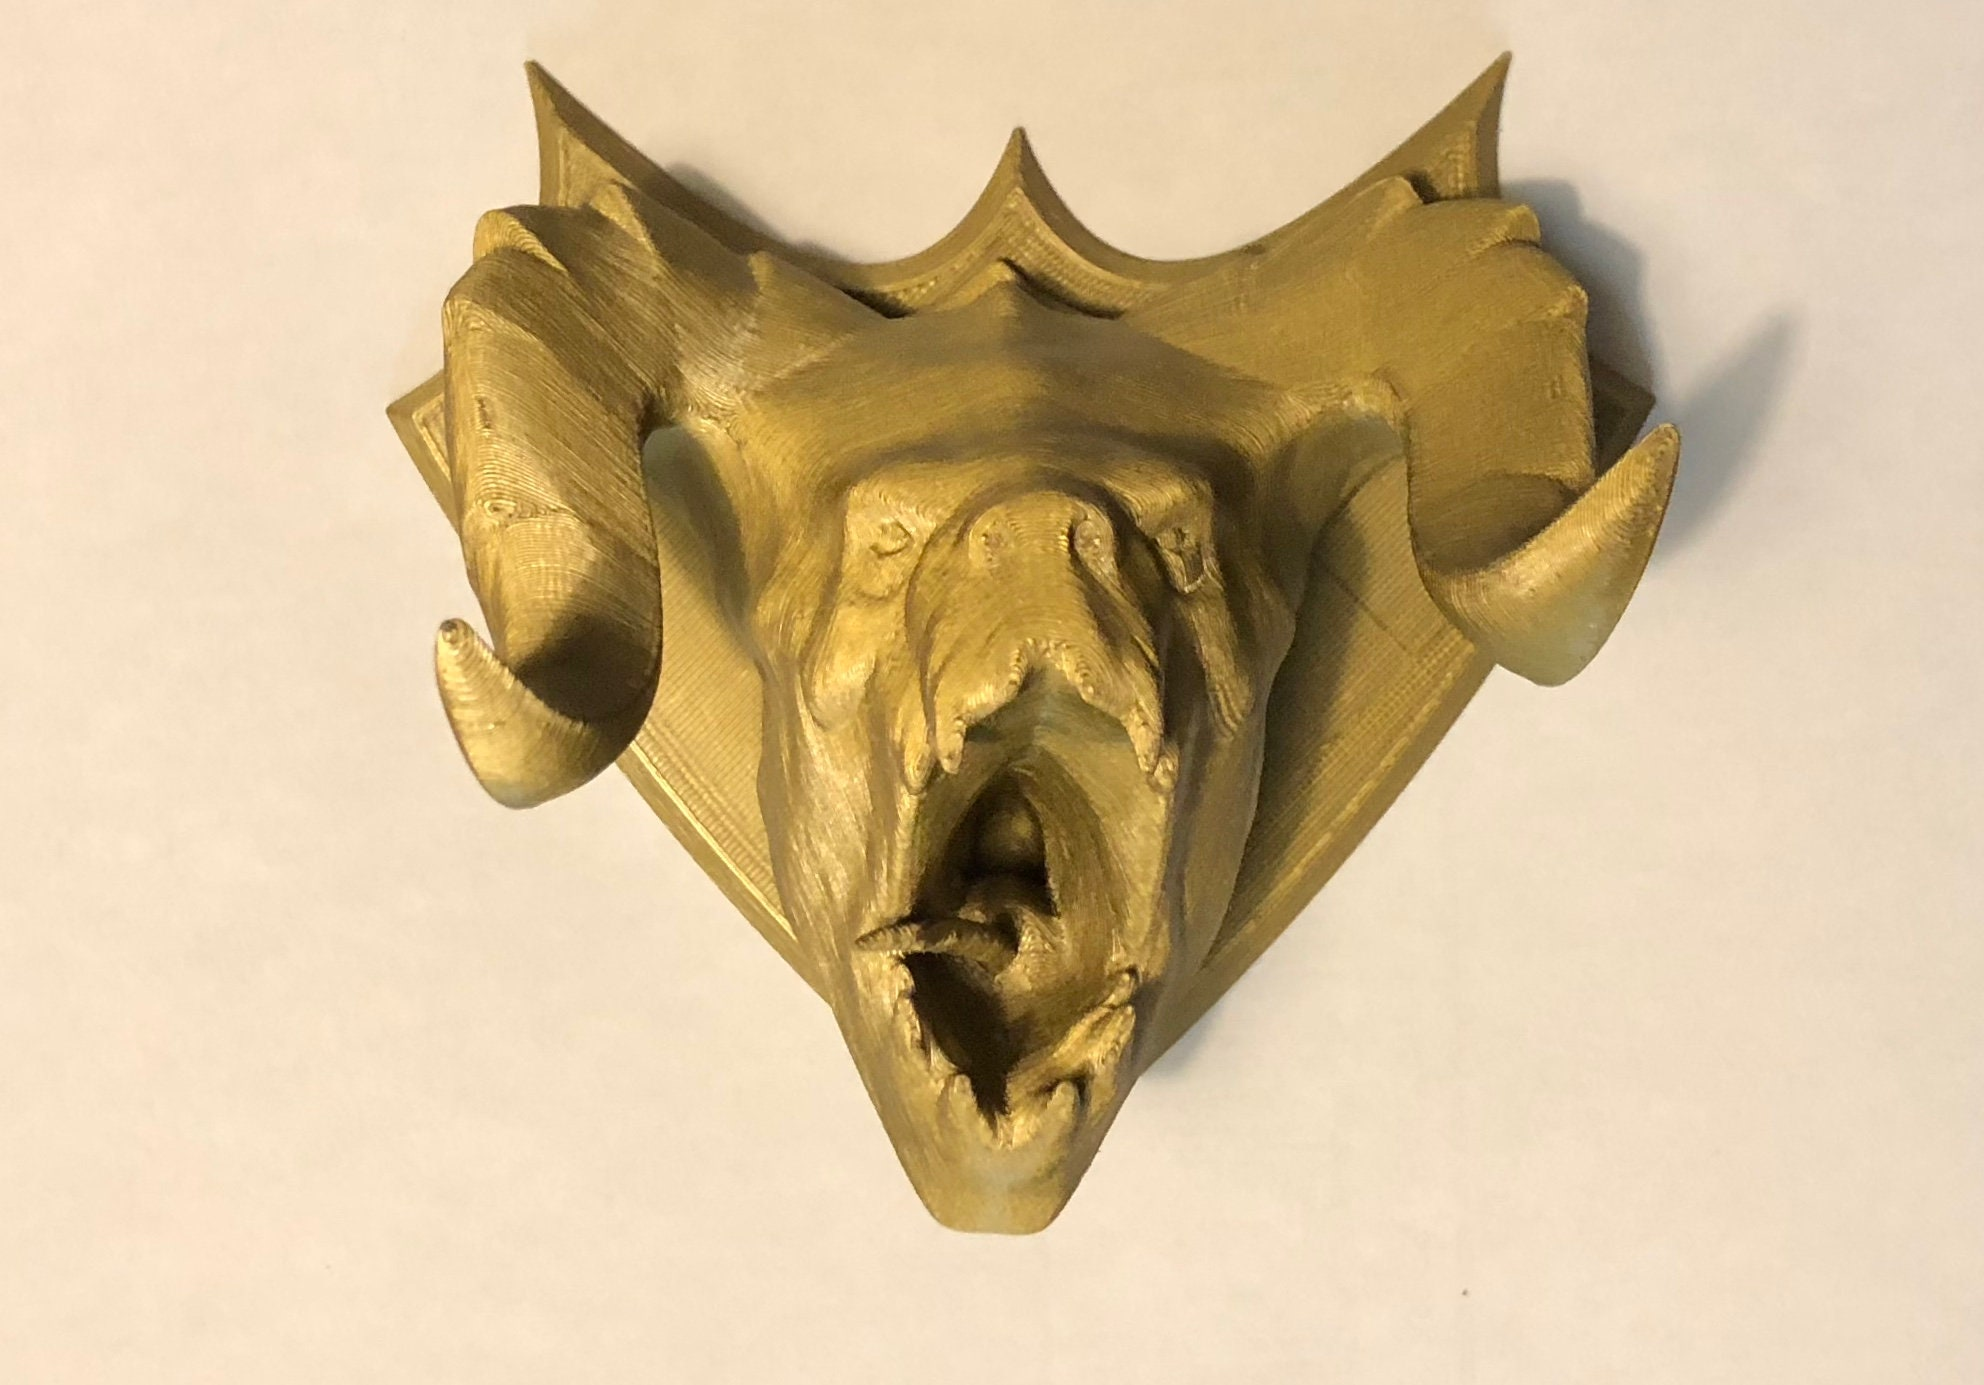 Mounted Deathclaw Head Hunting Trophy inspired by Fallout